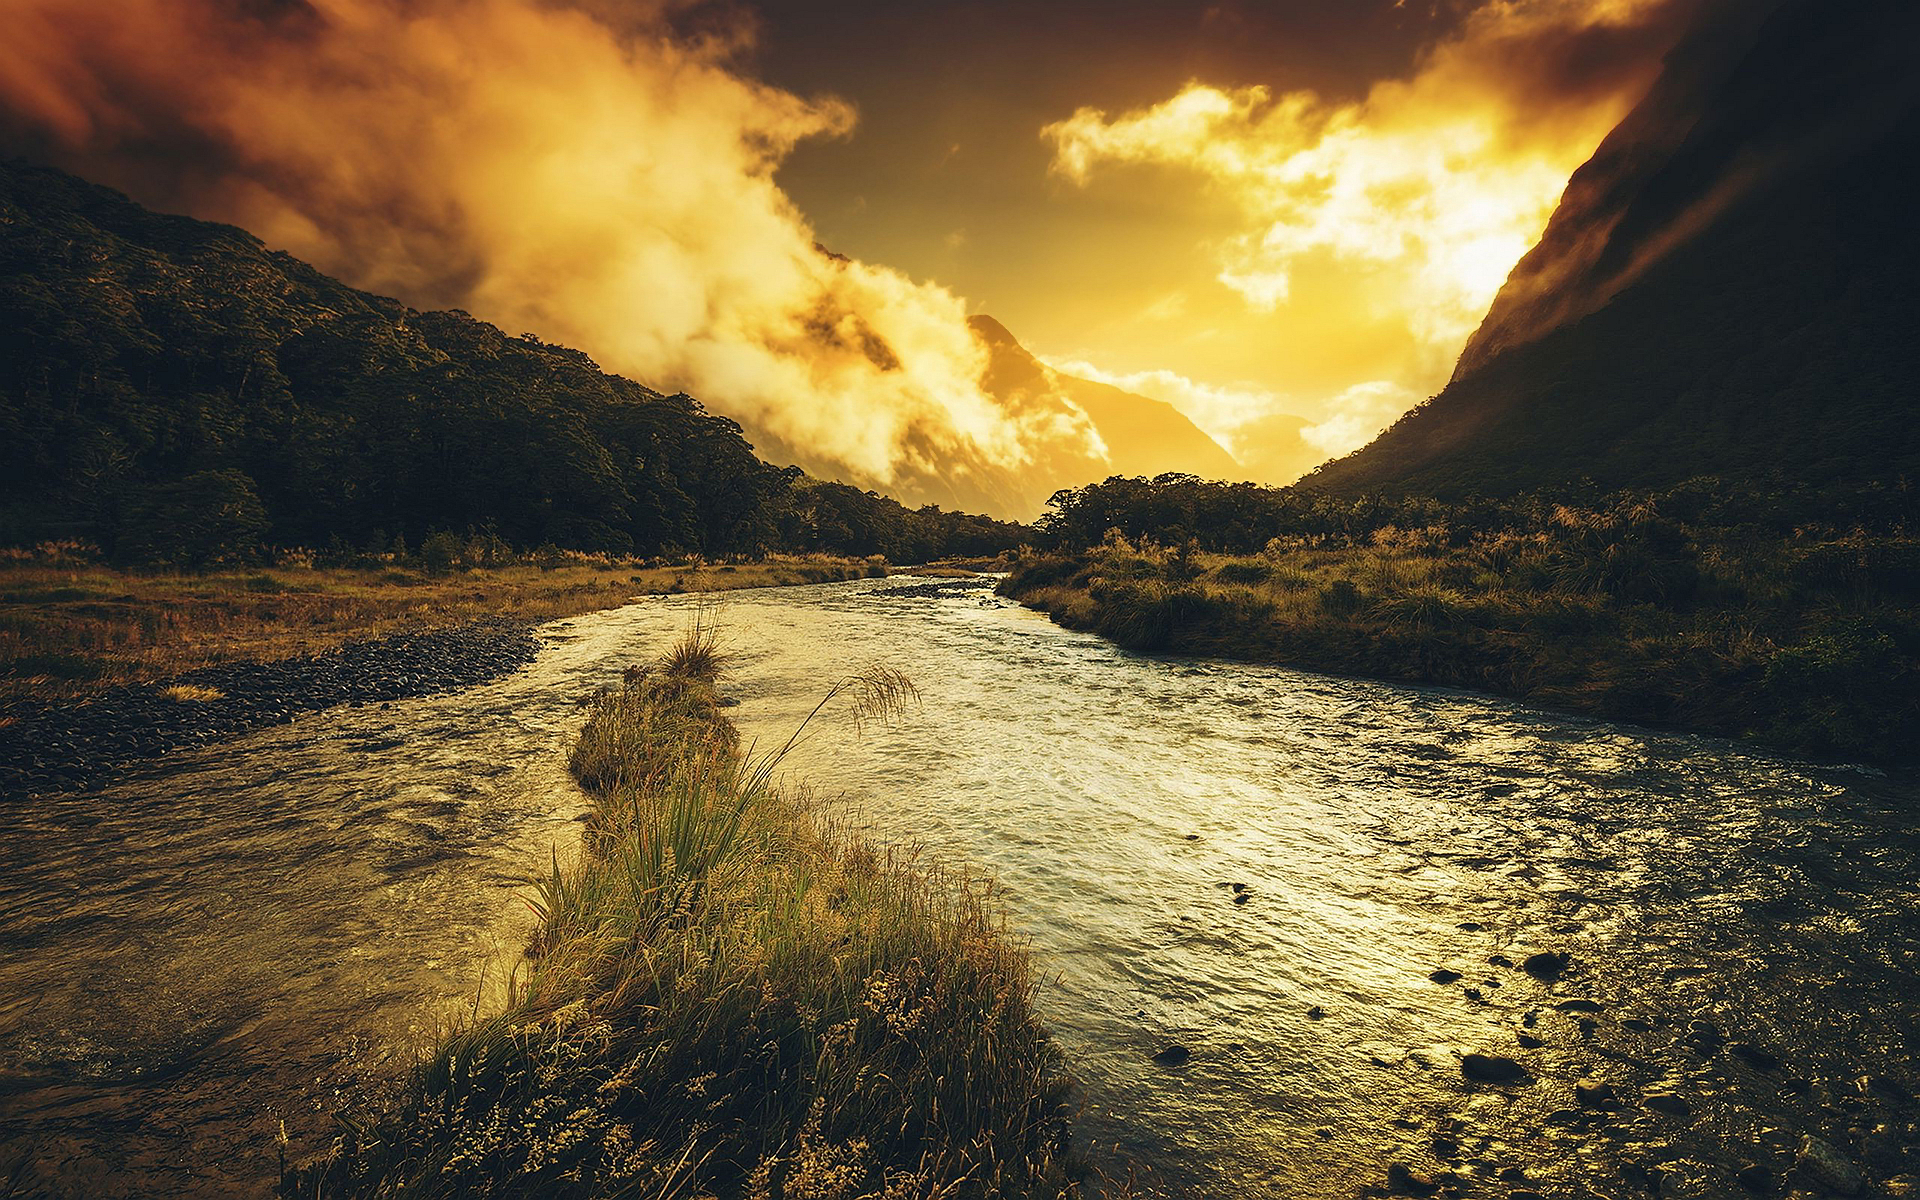 scenery river nature hd desktop wallpapers